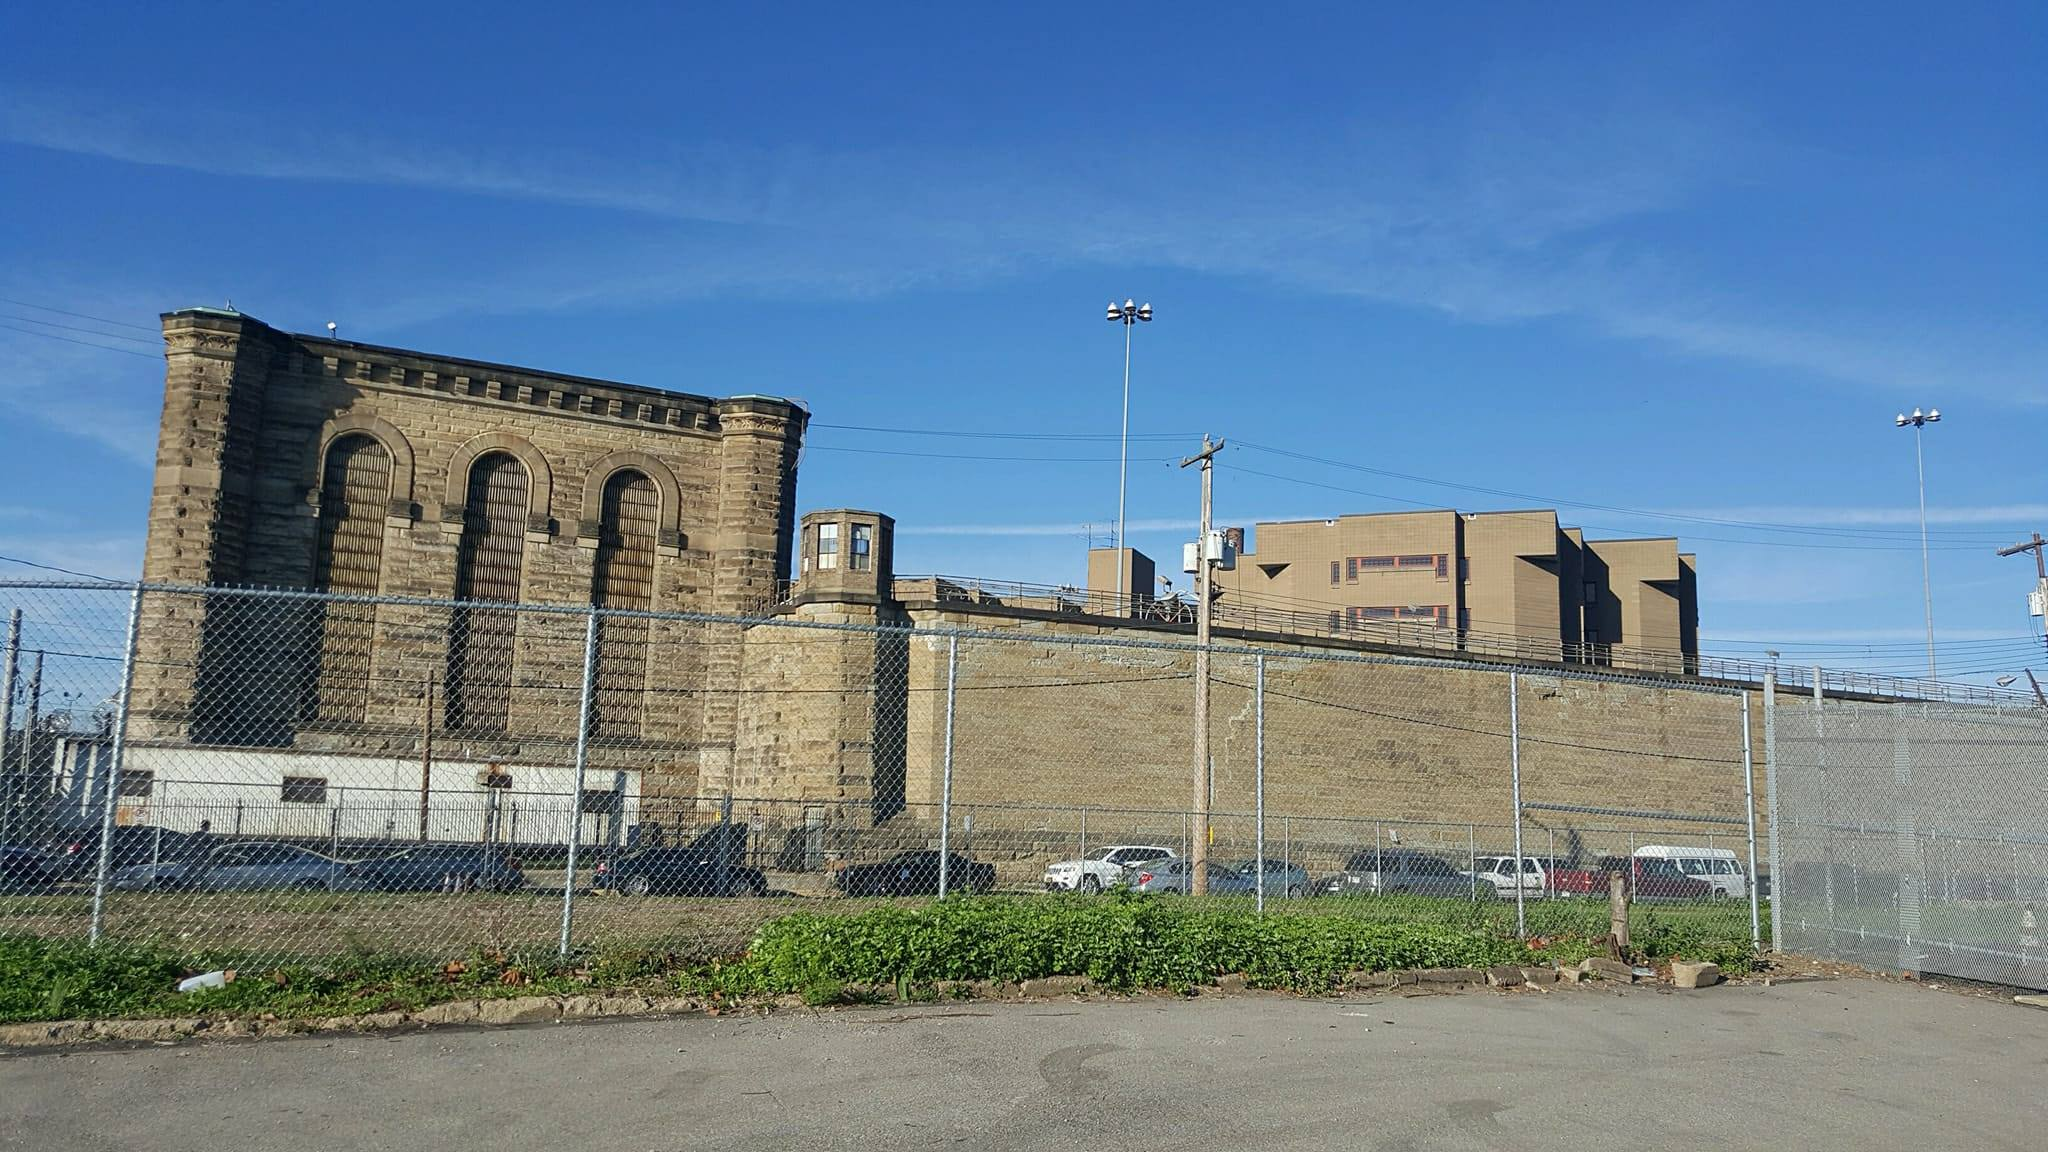 Old Allegheny jail